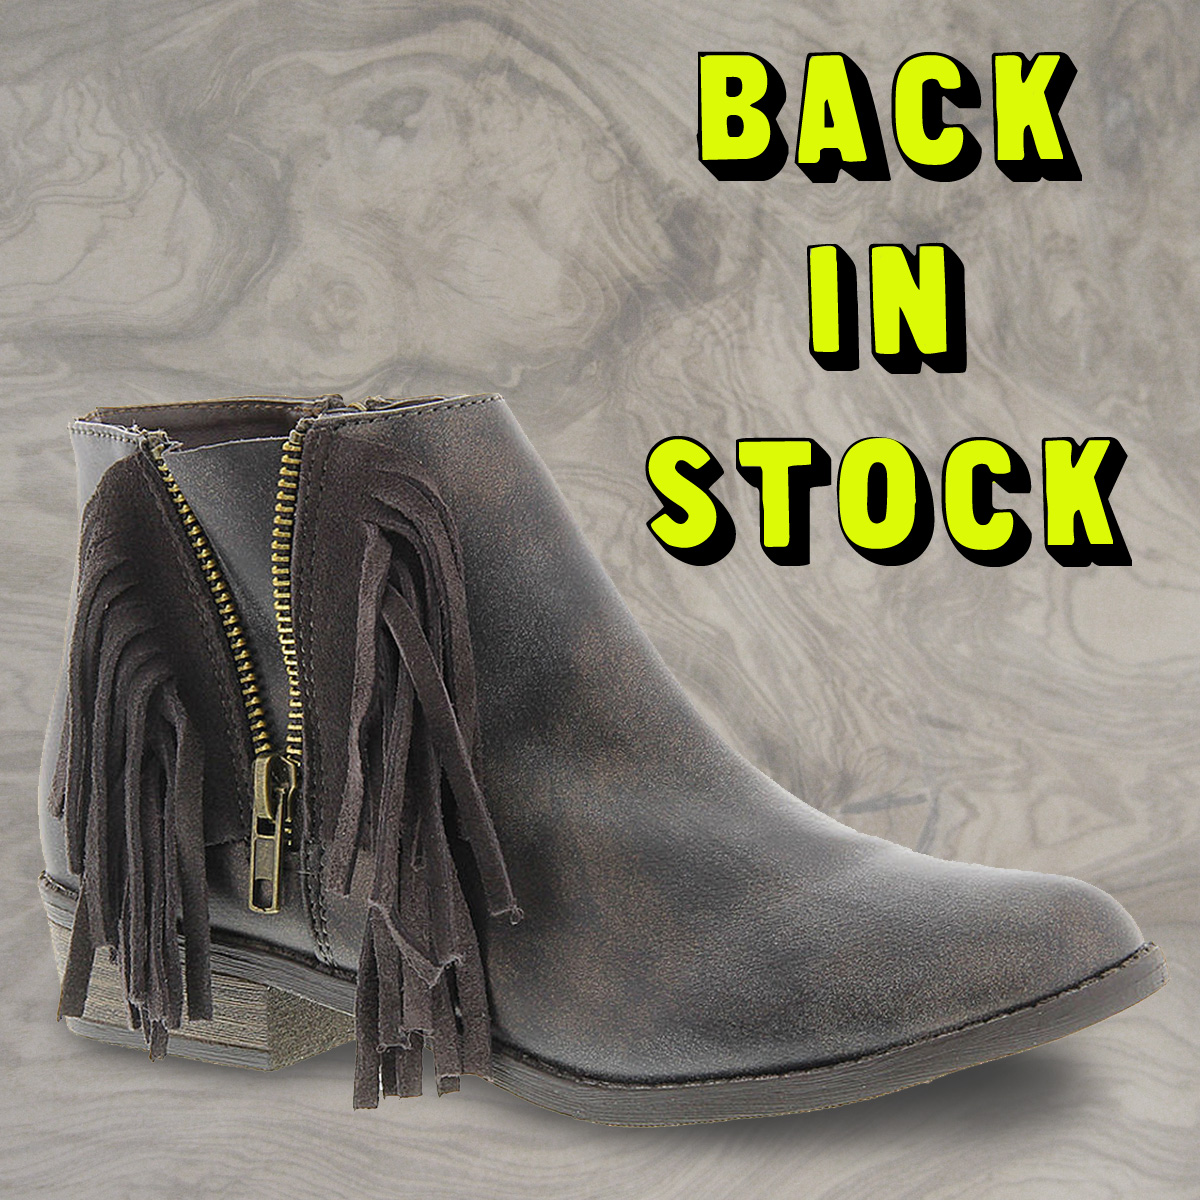 Steve Madden Fringe Bootie is back in stock